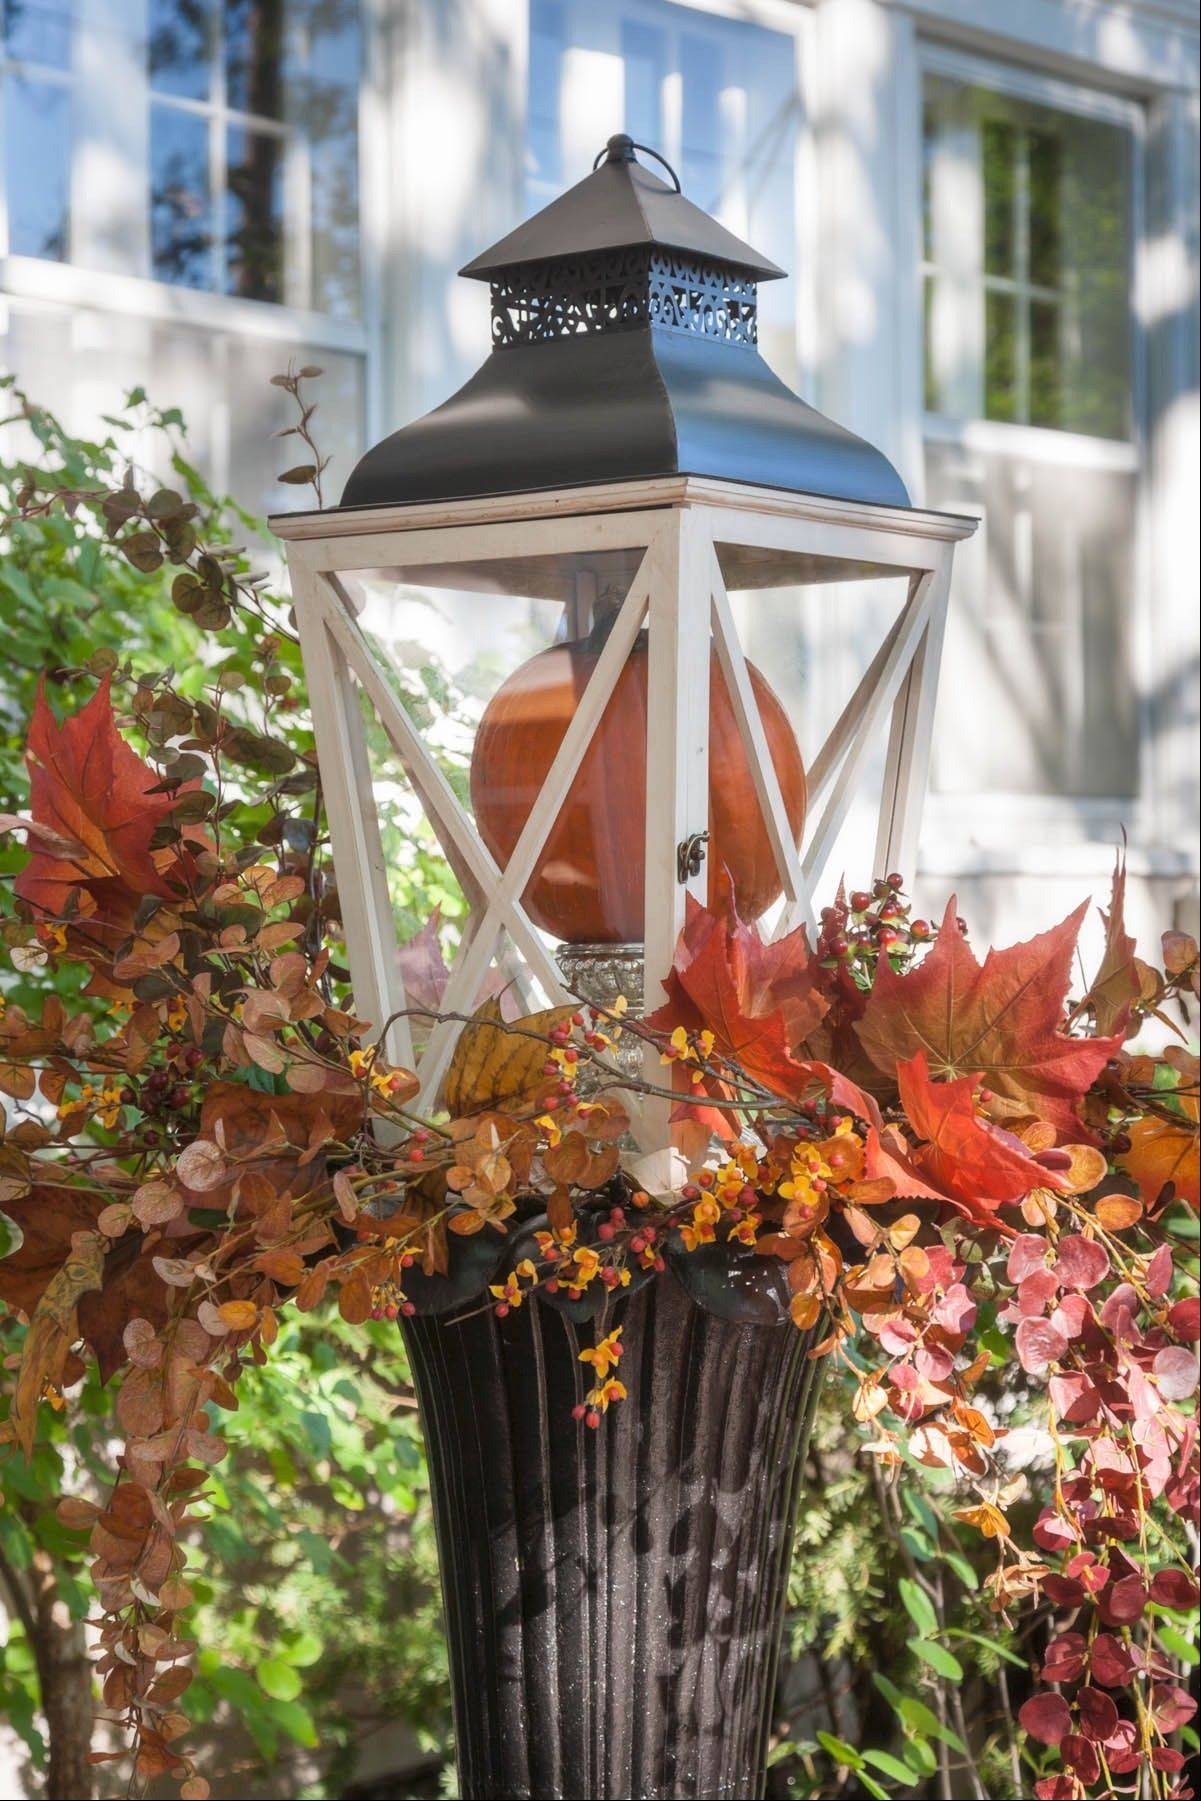 Lanterns will brighten up any yard all year round.